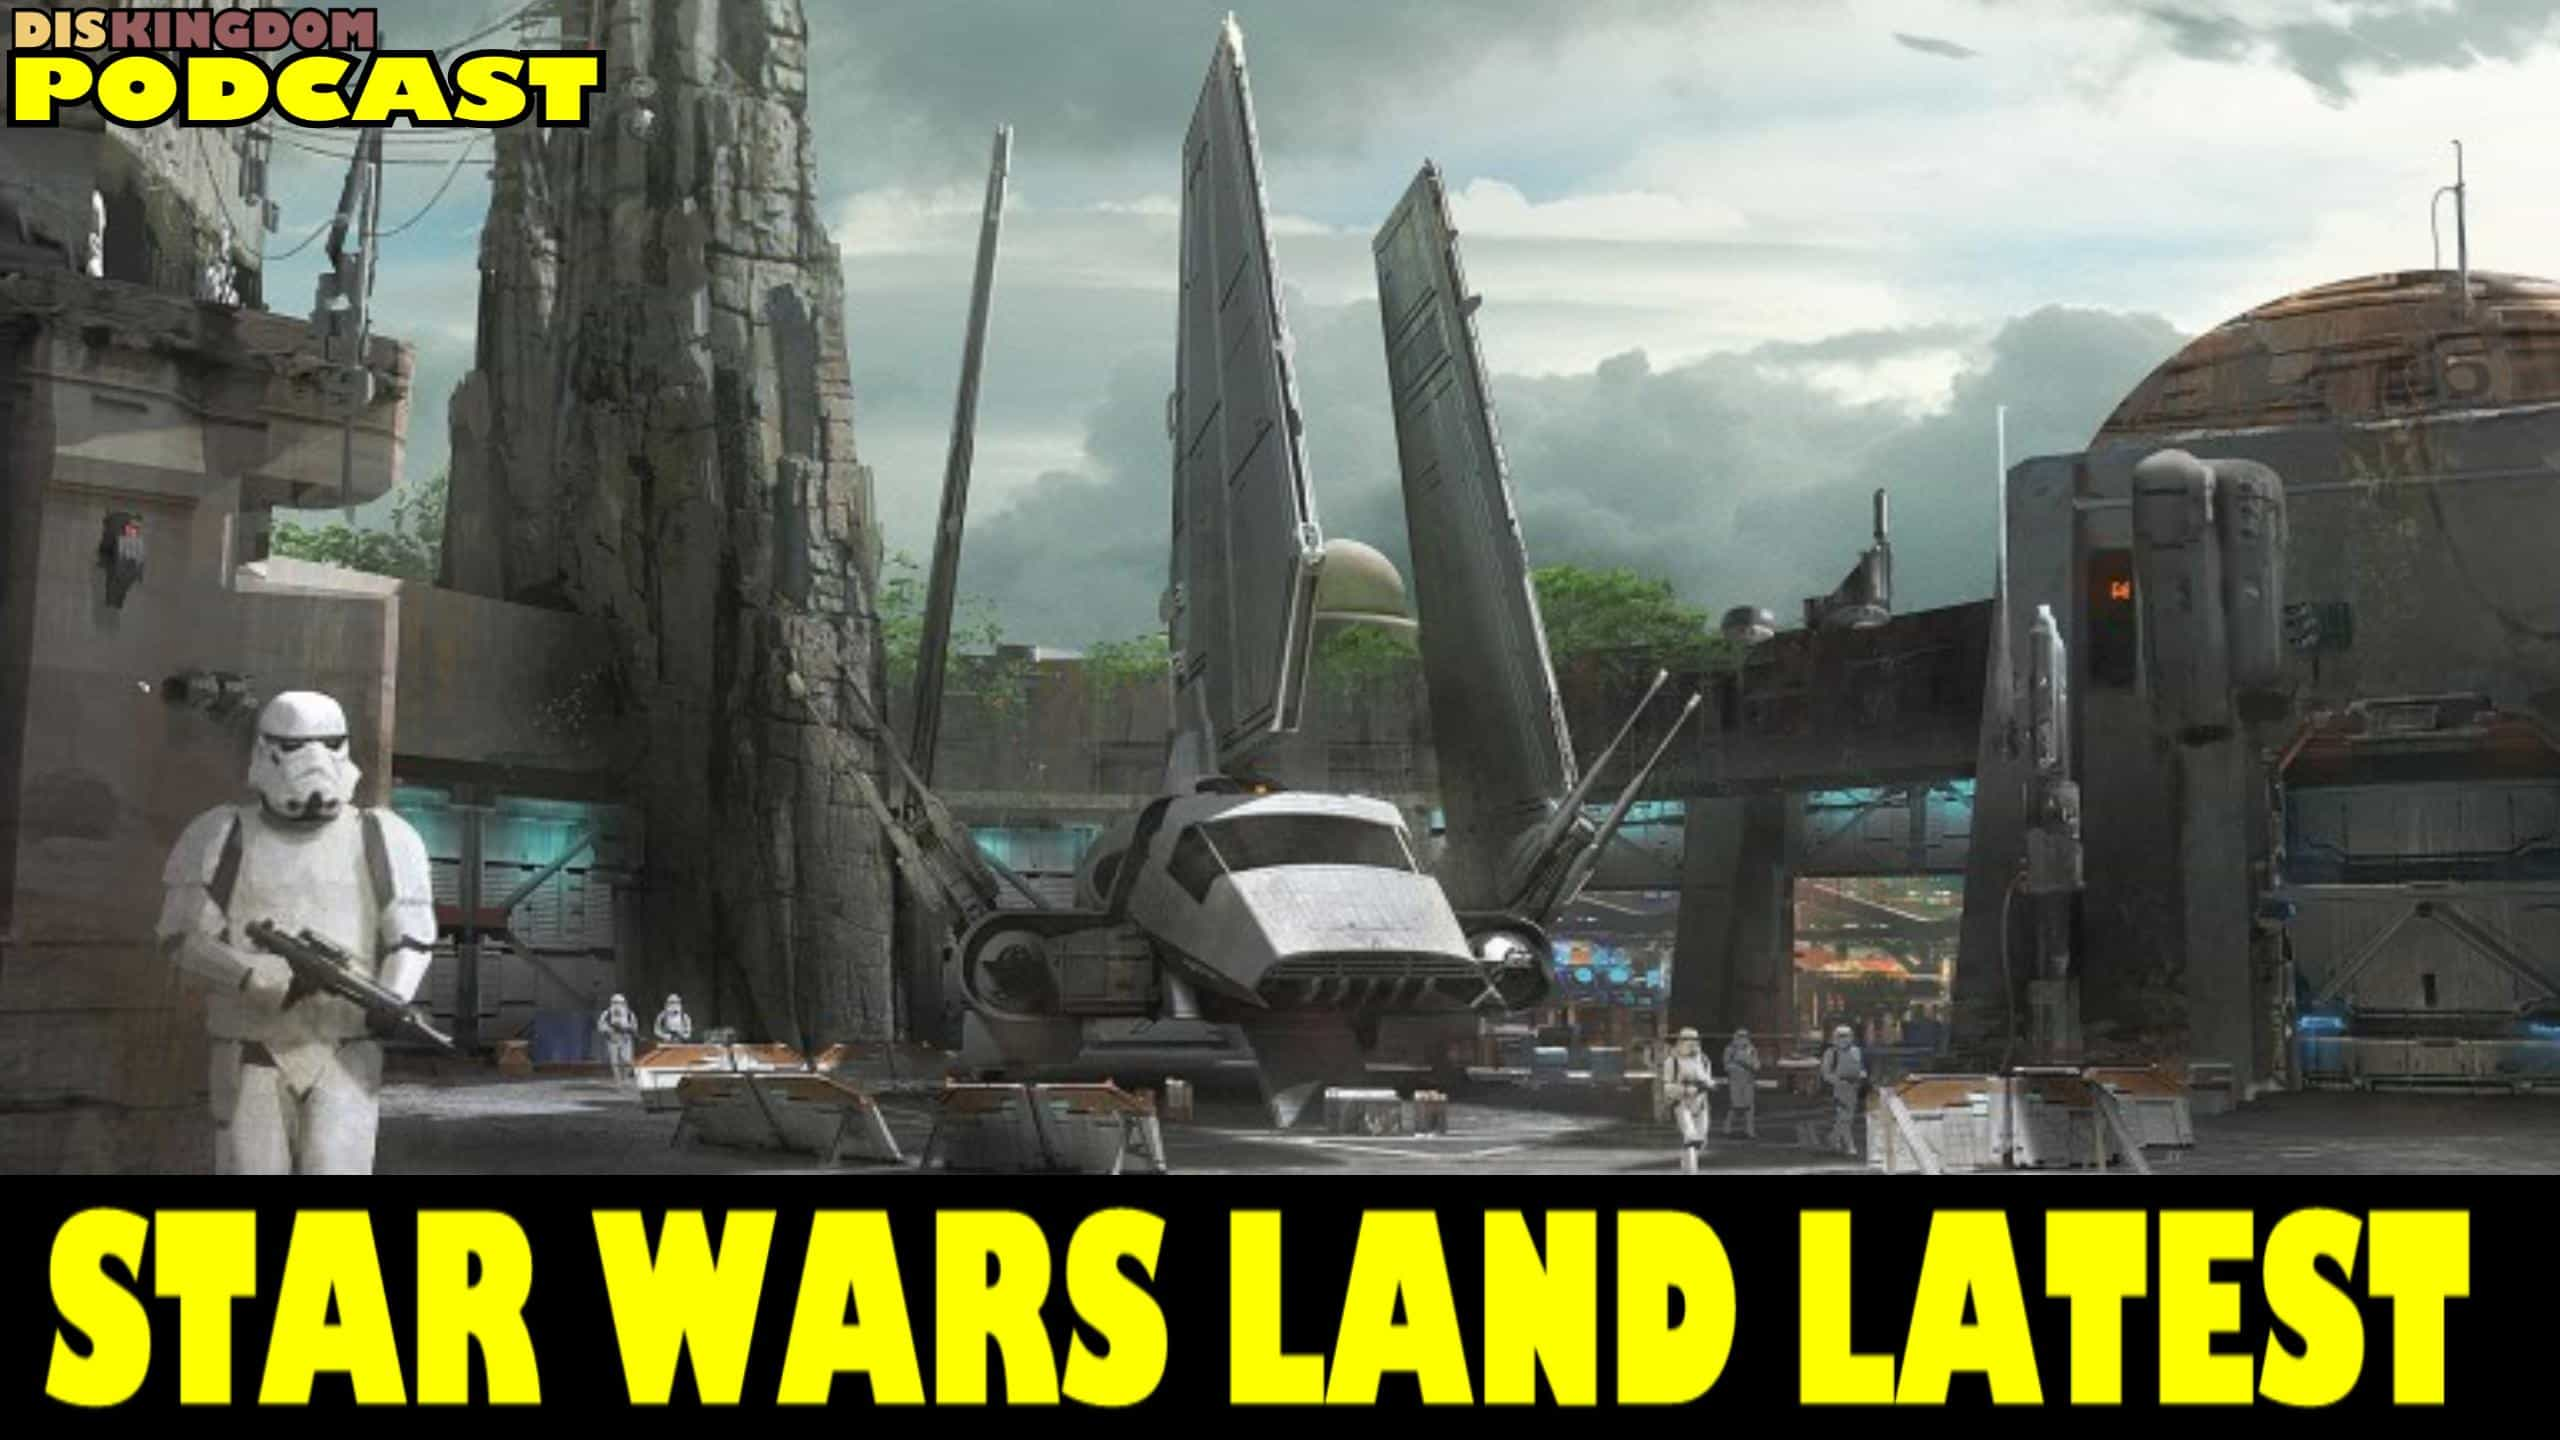 Latest Star Wars Land Update From Disney's Hollywood Studios